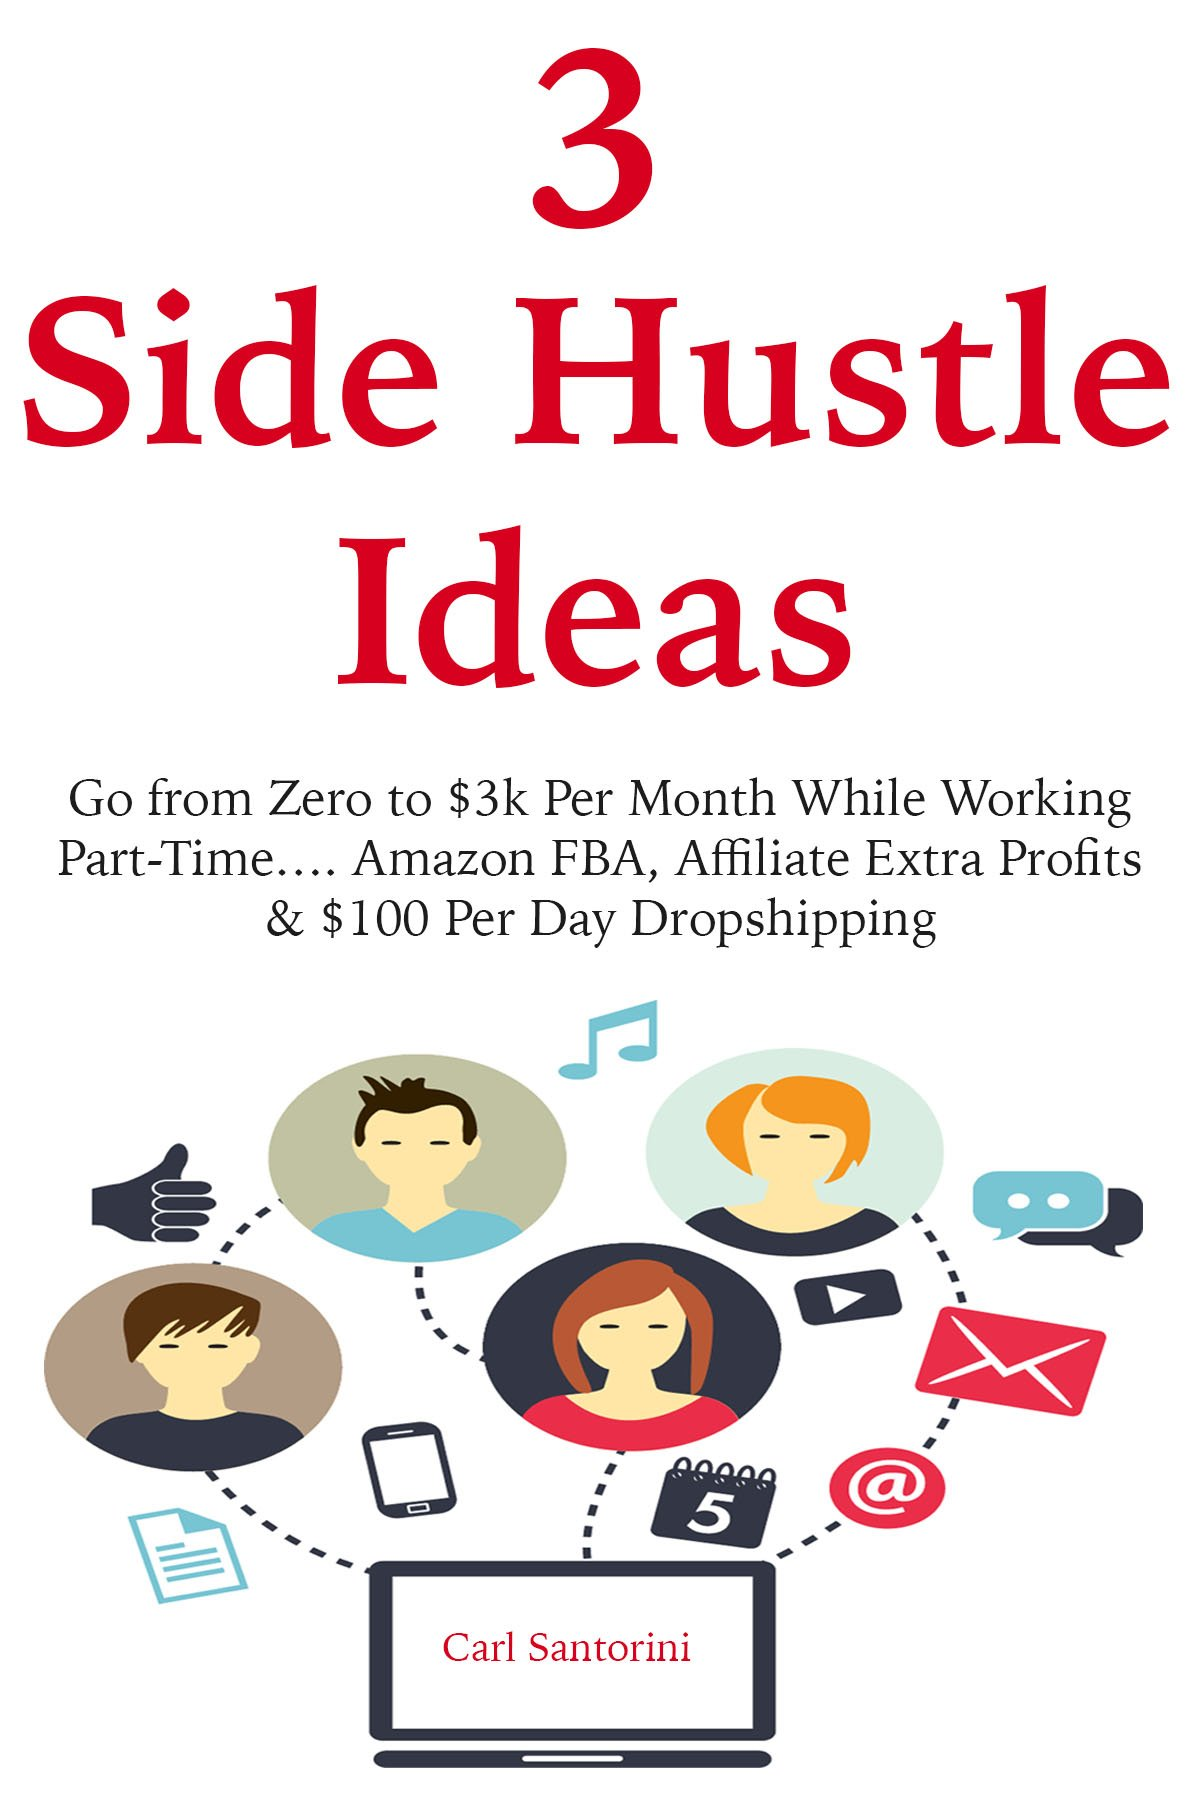 3 Side Hustle Ideas: Go from Zero to $3k Per Month While Working Part-Time…. Amazon FBA, Affiliate Extra Profits & $100 Per Day Dropshipping